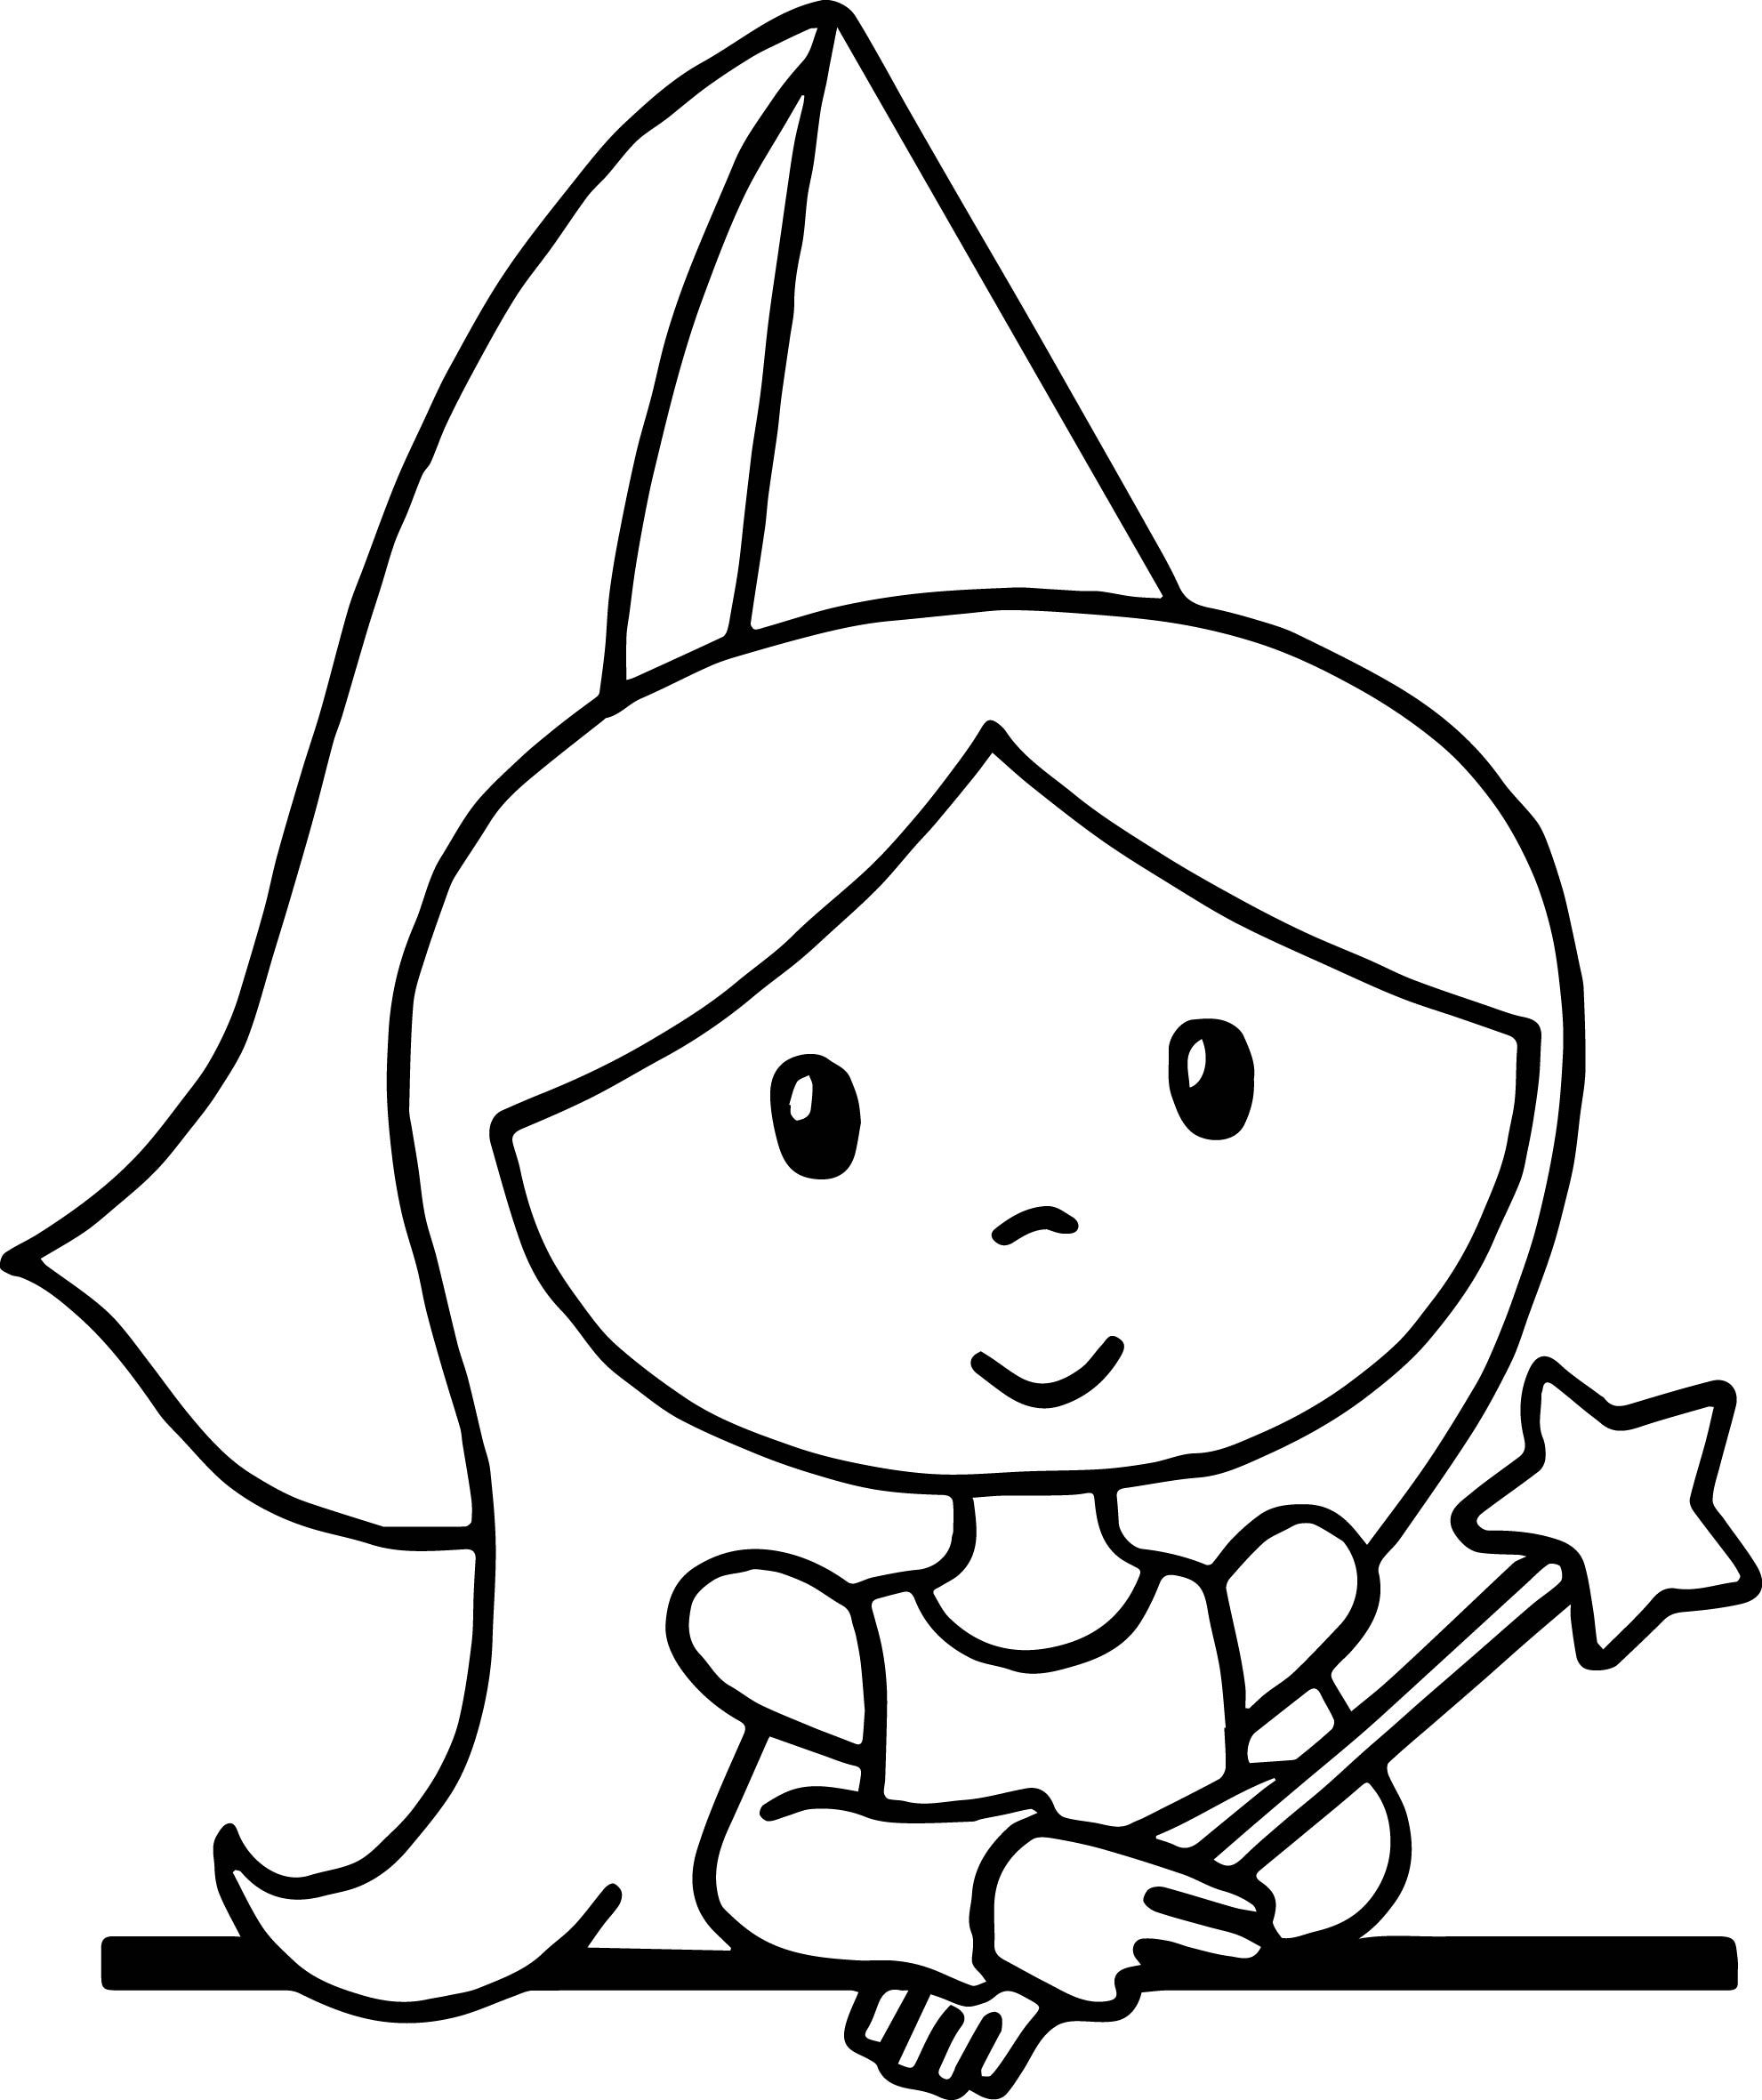 Cool Cute Cartoon Princess Standing Coloring Page Princess